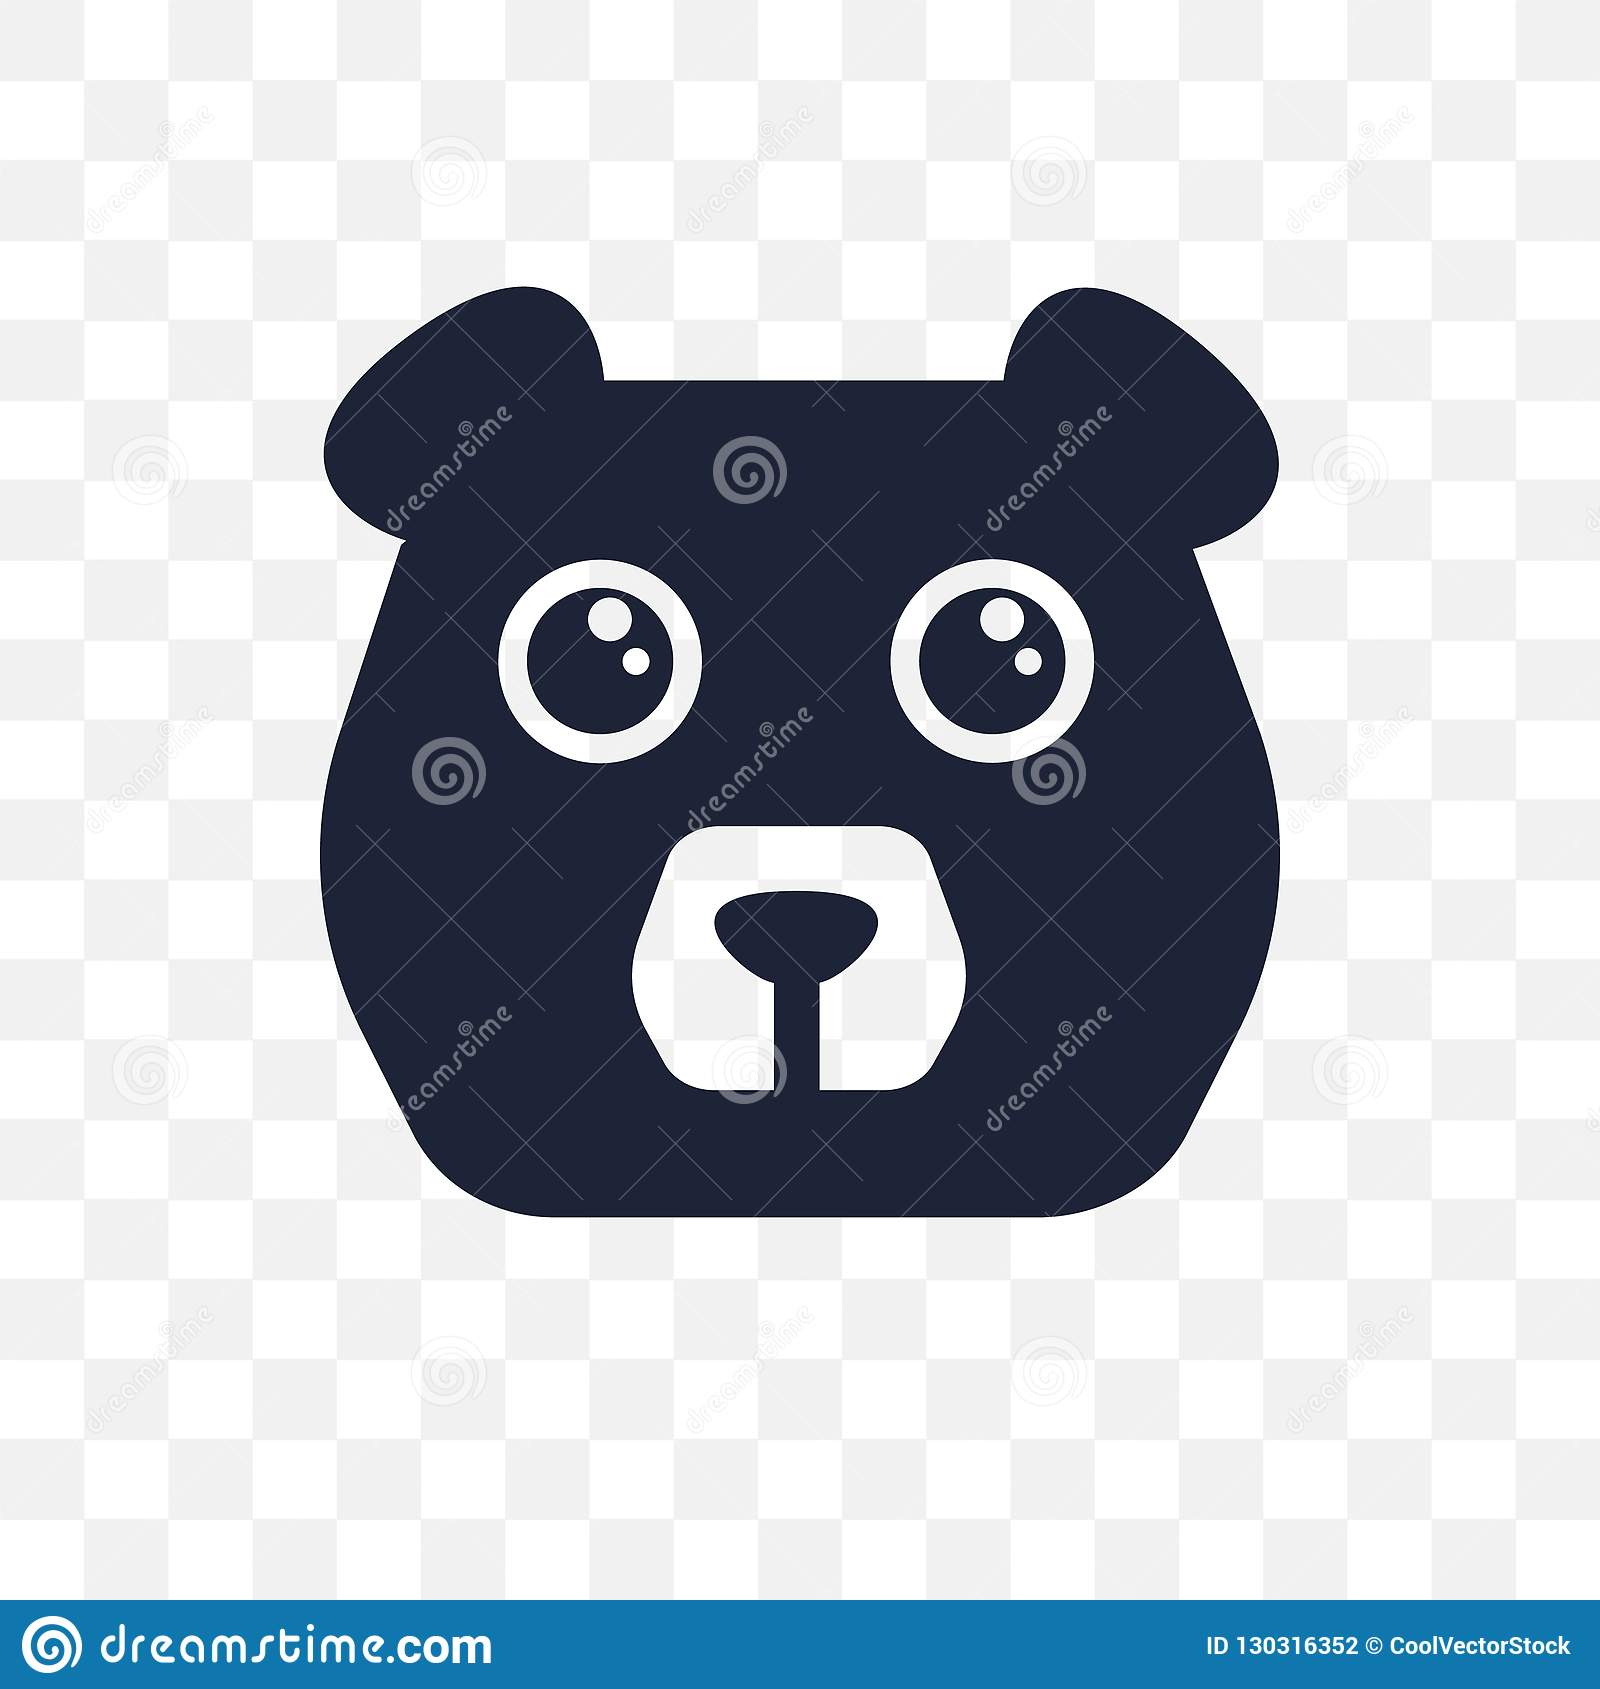 bear transparent icon bear symbol design from animals collection stock vector illustration of concept icons 130316352 https www dreamstime com bear transparent icon symbol design animals collectio collection simple element vector illustration background image130316352